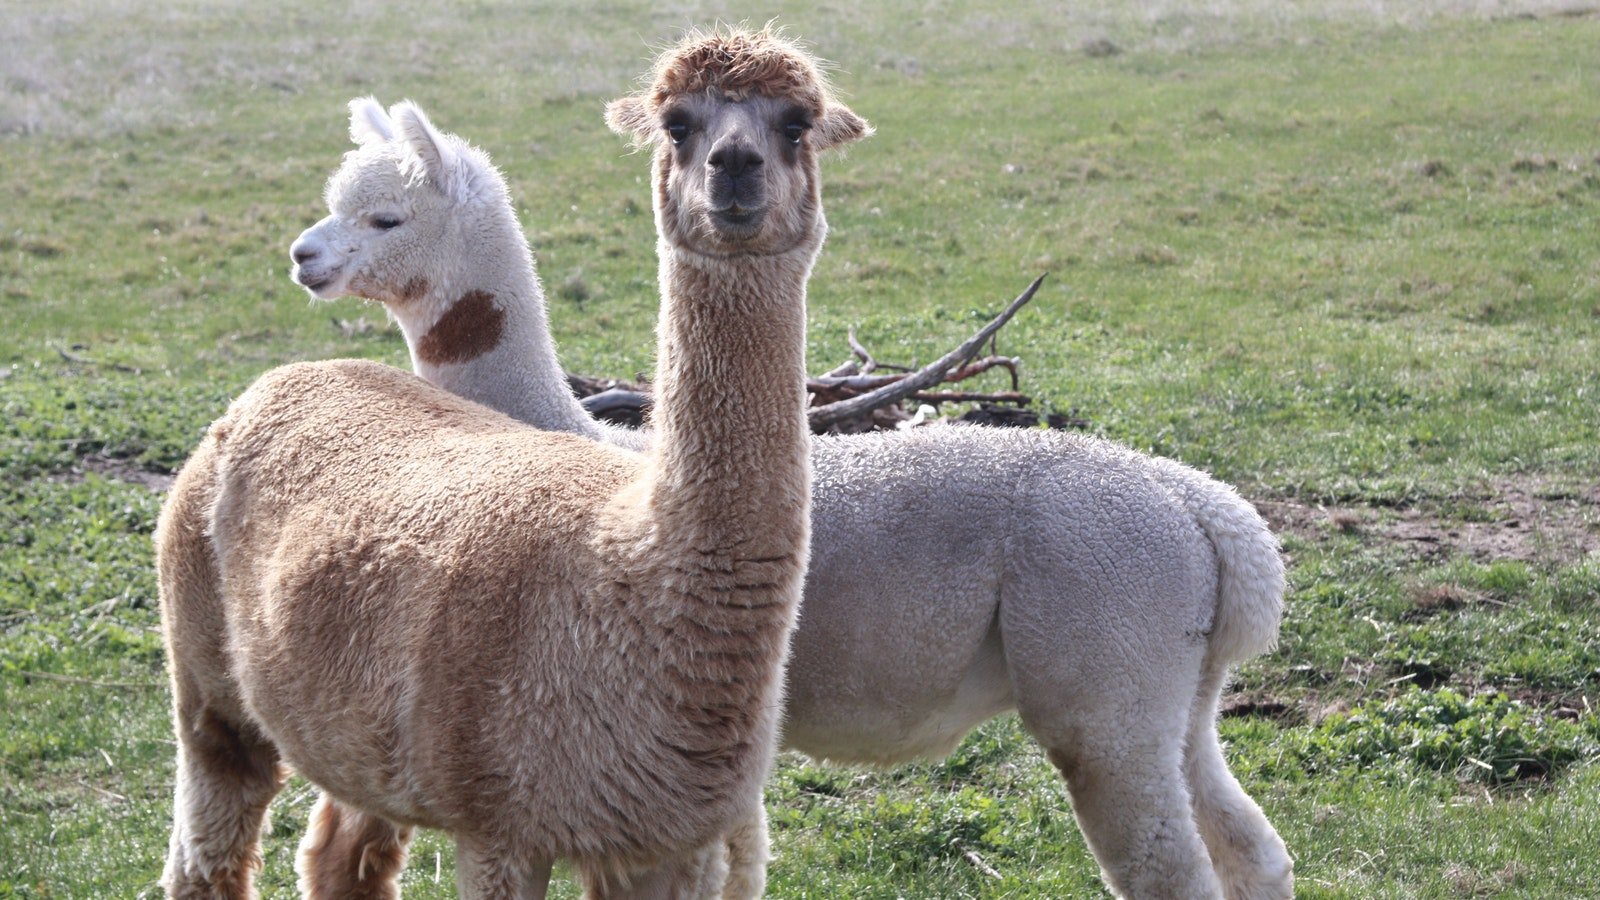 Many farms have an alpaca or two to protect their sheep